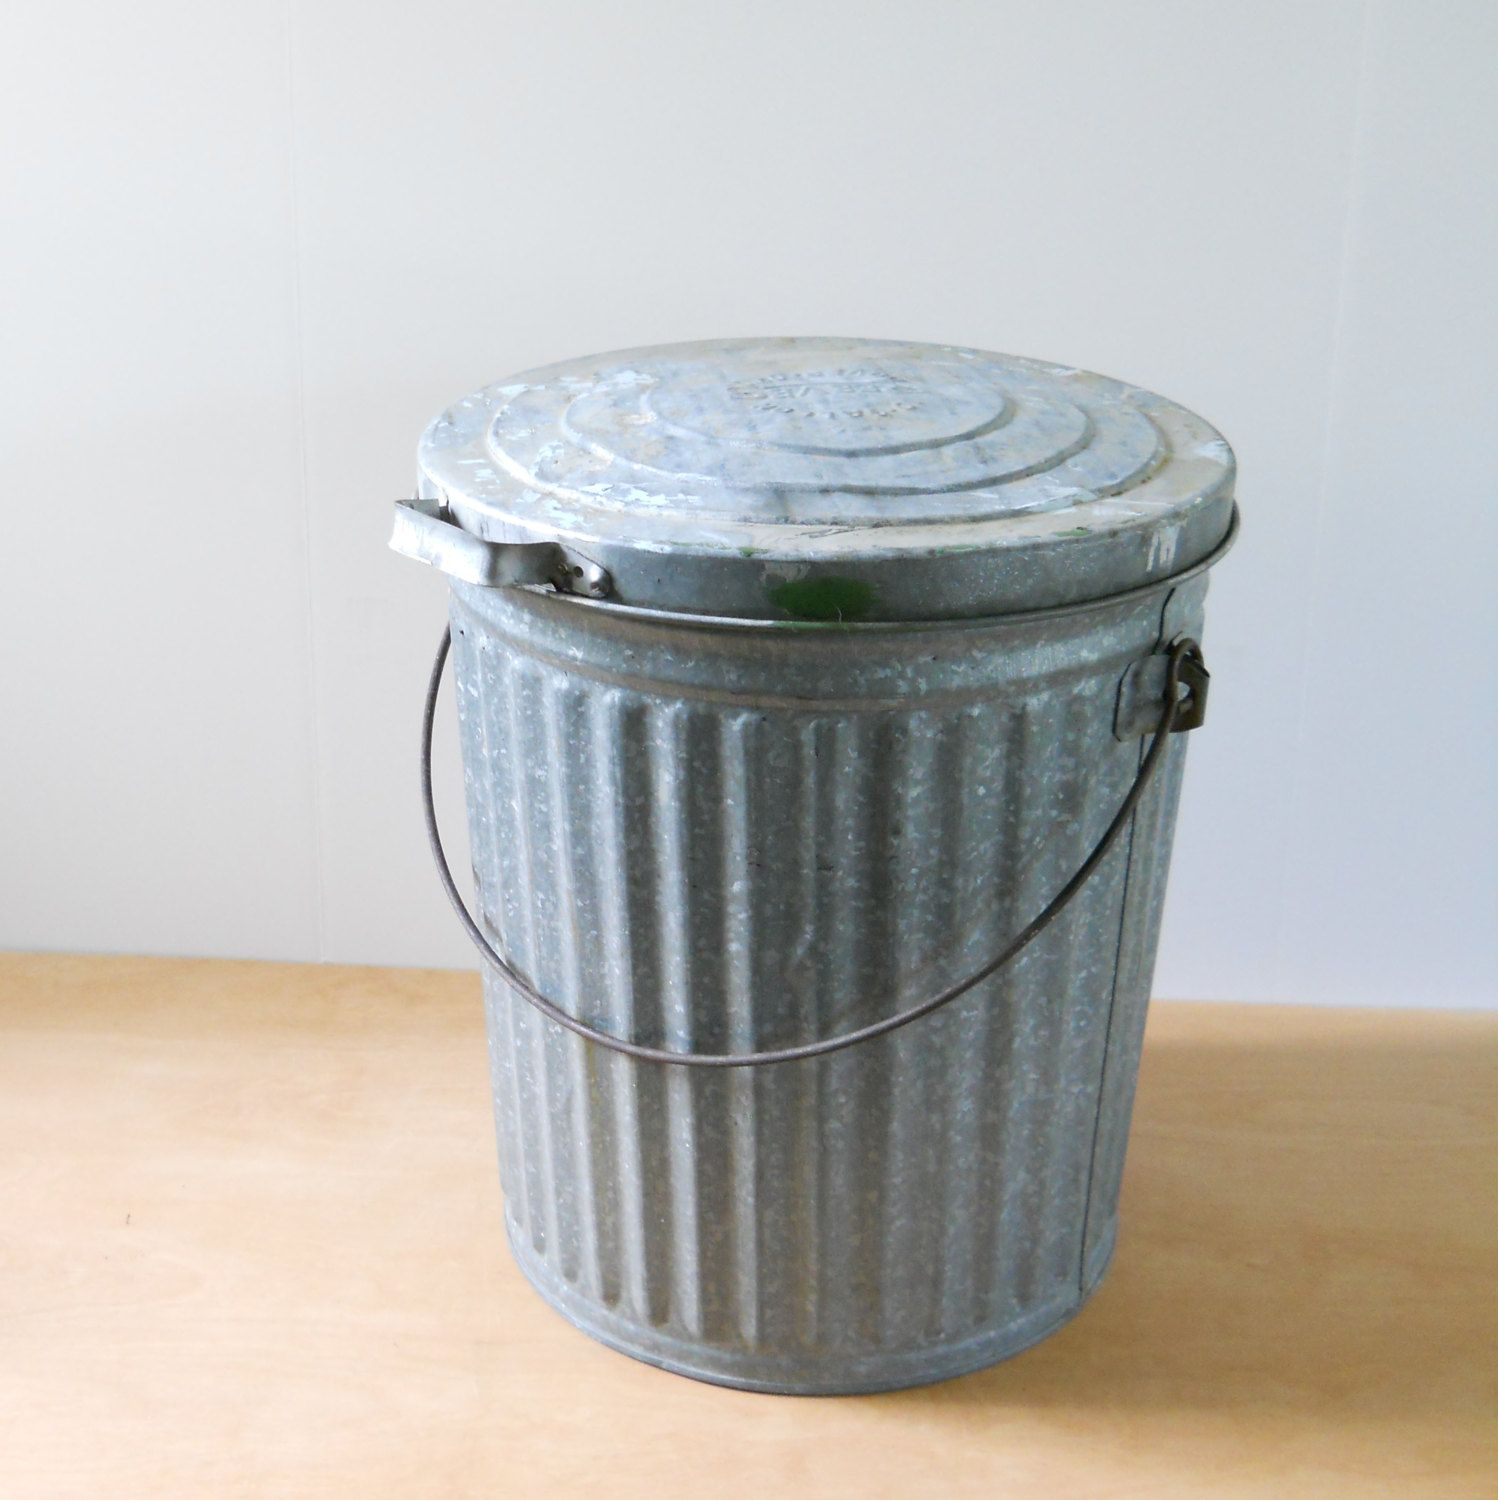 Vintage Reeves Galvanized Trash Can Industrial Rustic Garbage Can Galvanized With Lid And Handle By Lisabretrostyle2 On Etsy Trash Can Galvanized Canning